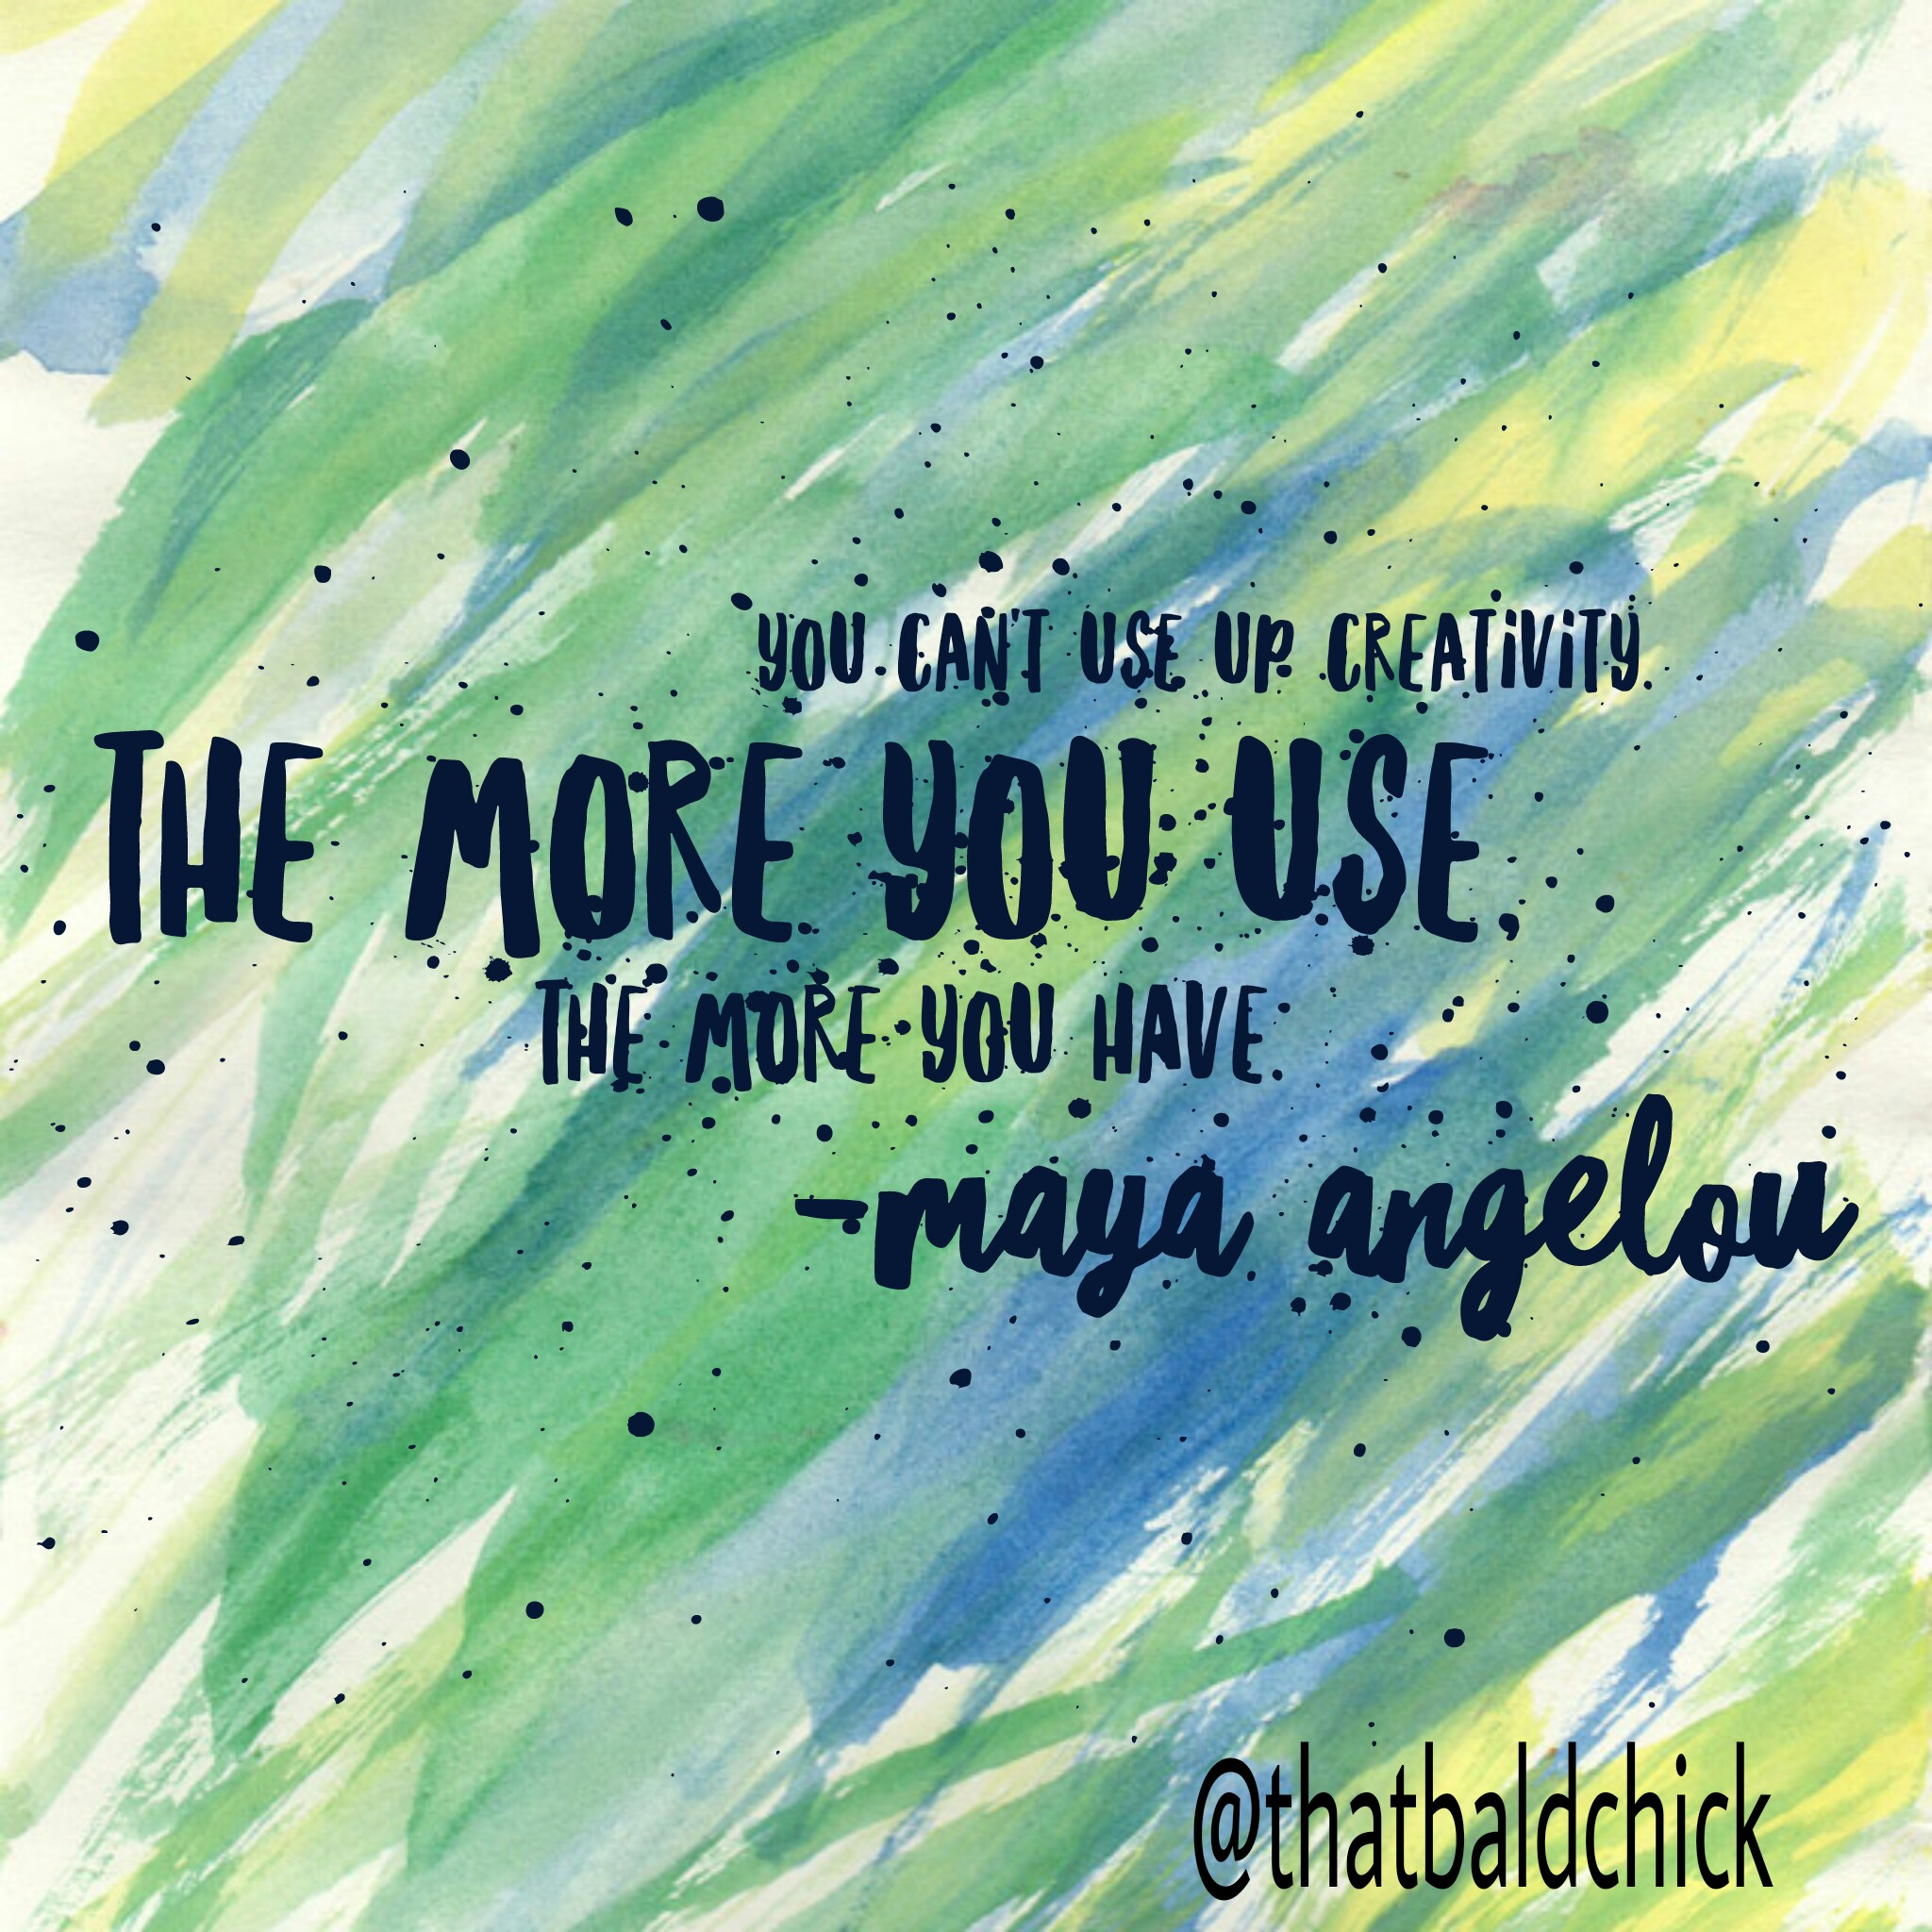 Maya Angelou quote @thatbaldchick